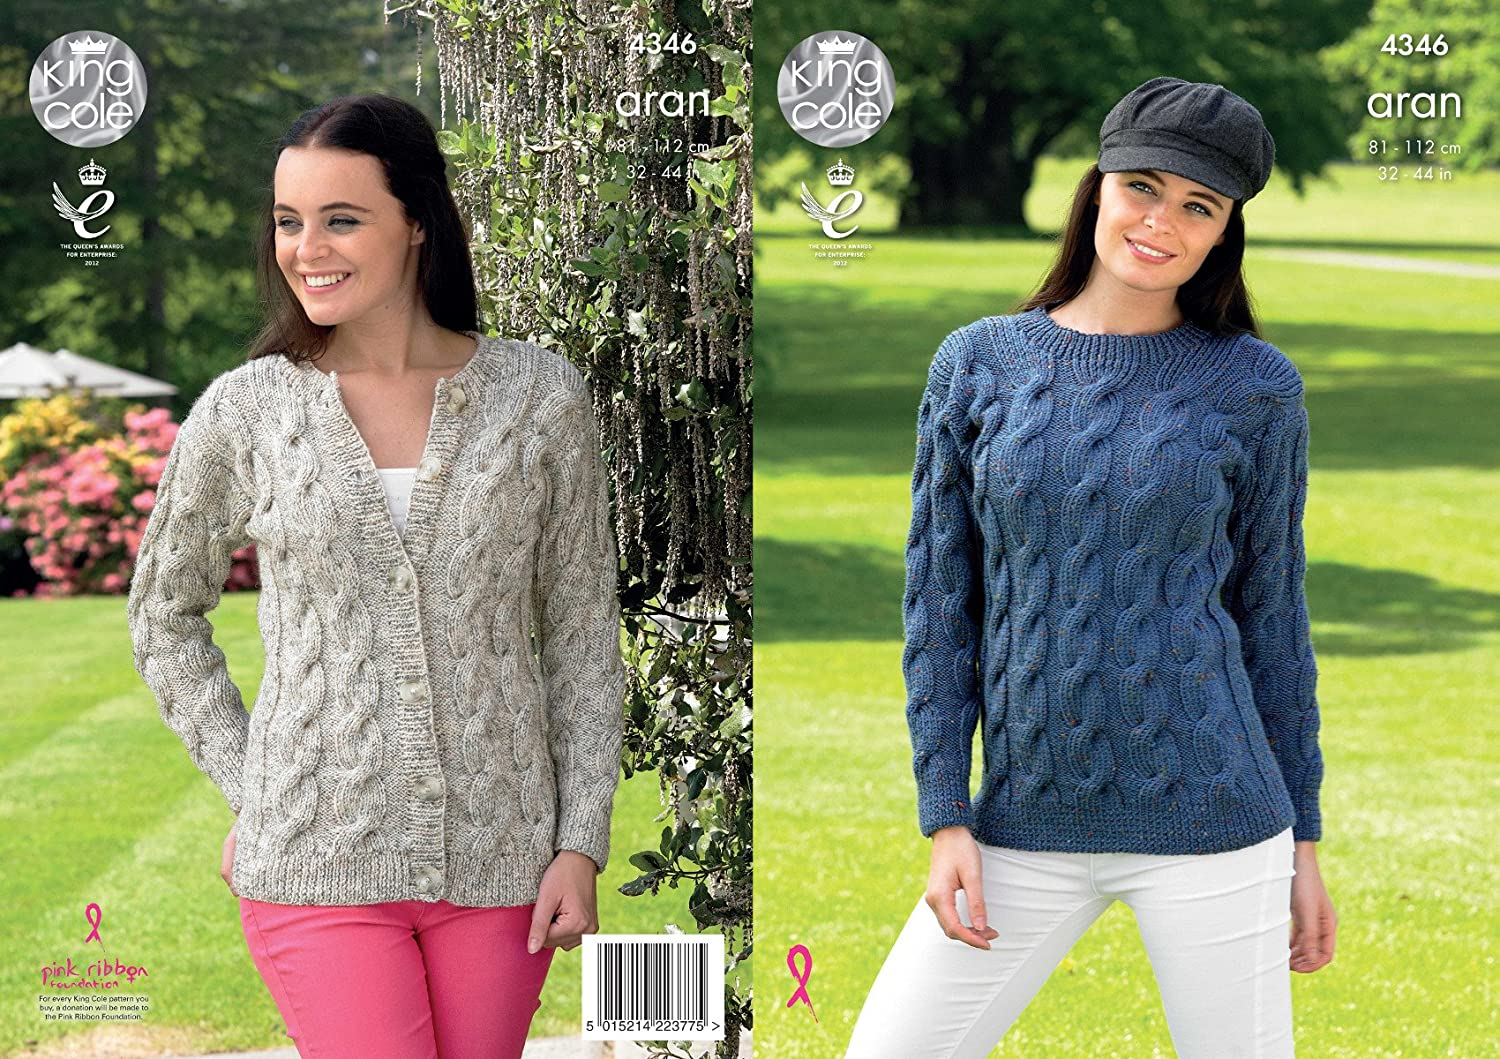 King Cole Ladies Knitting Pattern Womens Cable Detail Sweater & Cardigan Fashion Aran (4346)